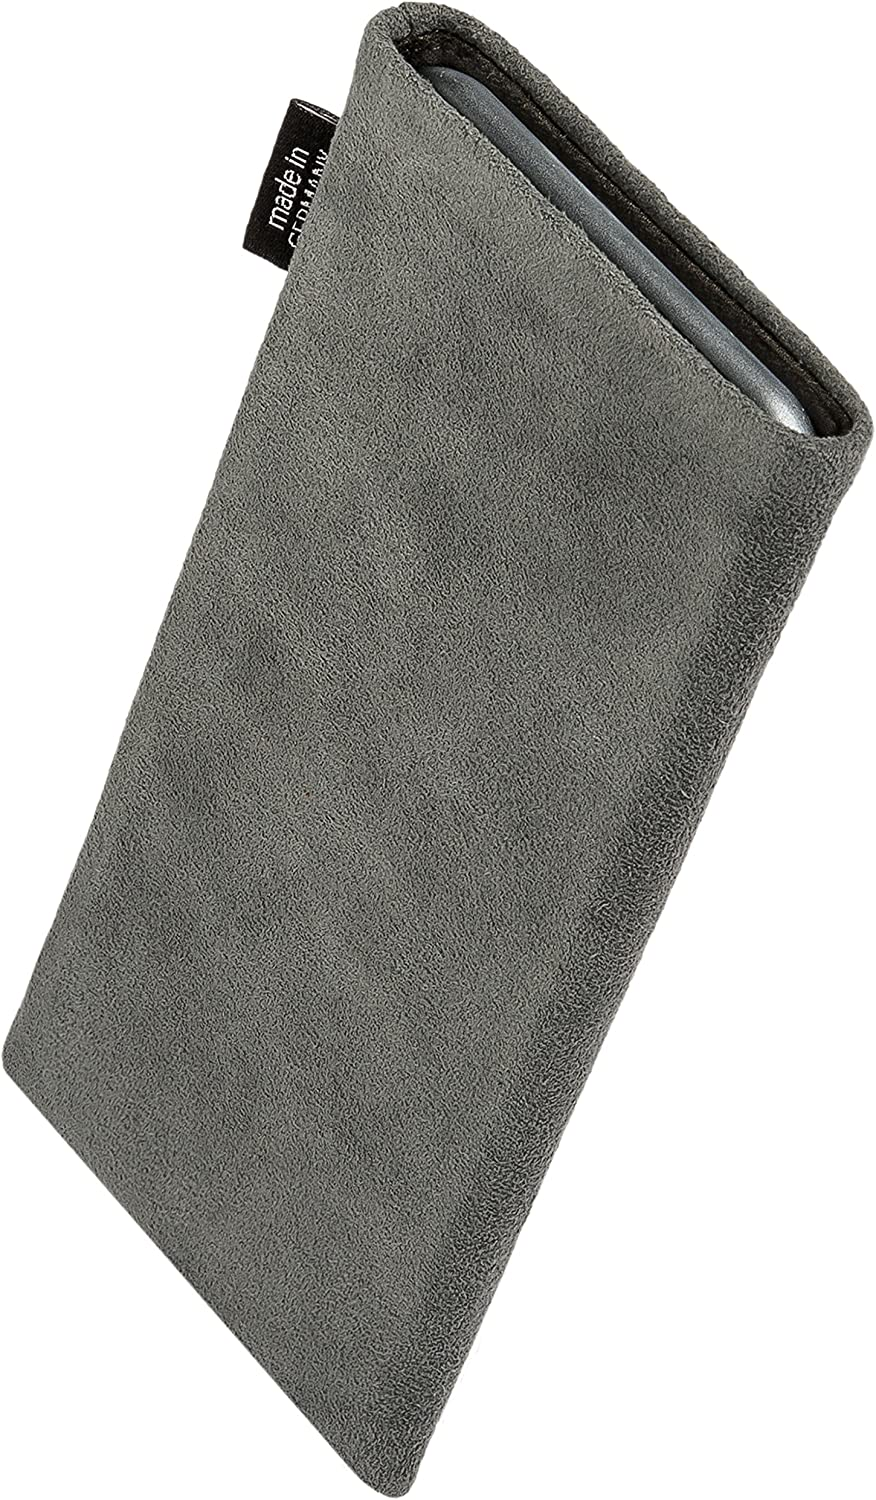 Made in Germany Genuine Alcantara pouch case cover with MicroFibre lining for display cleaning fitBAG Classic Gray custom tailored sleeve for Apple iPhone 12 Pro Max